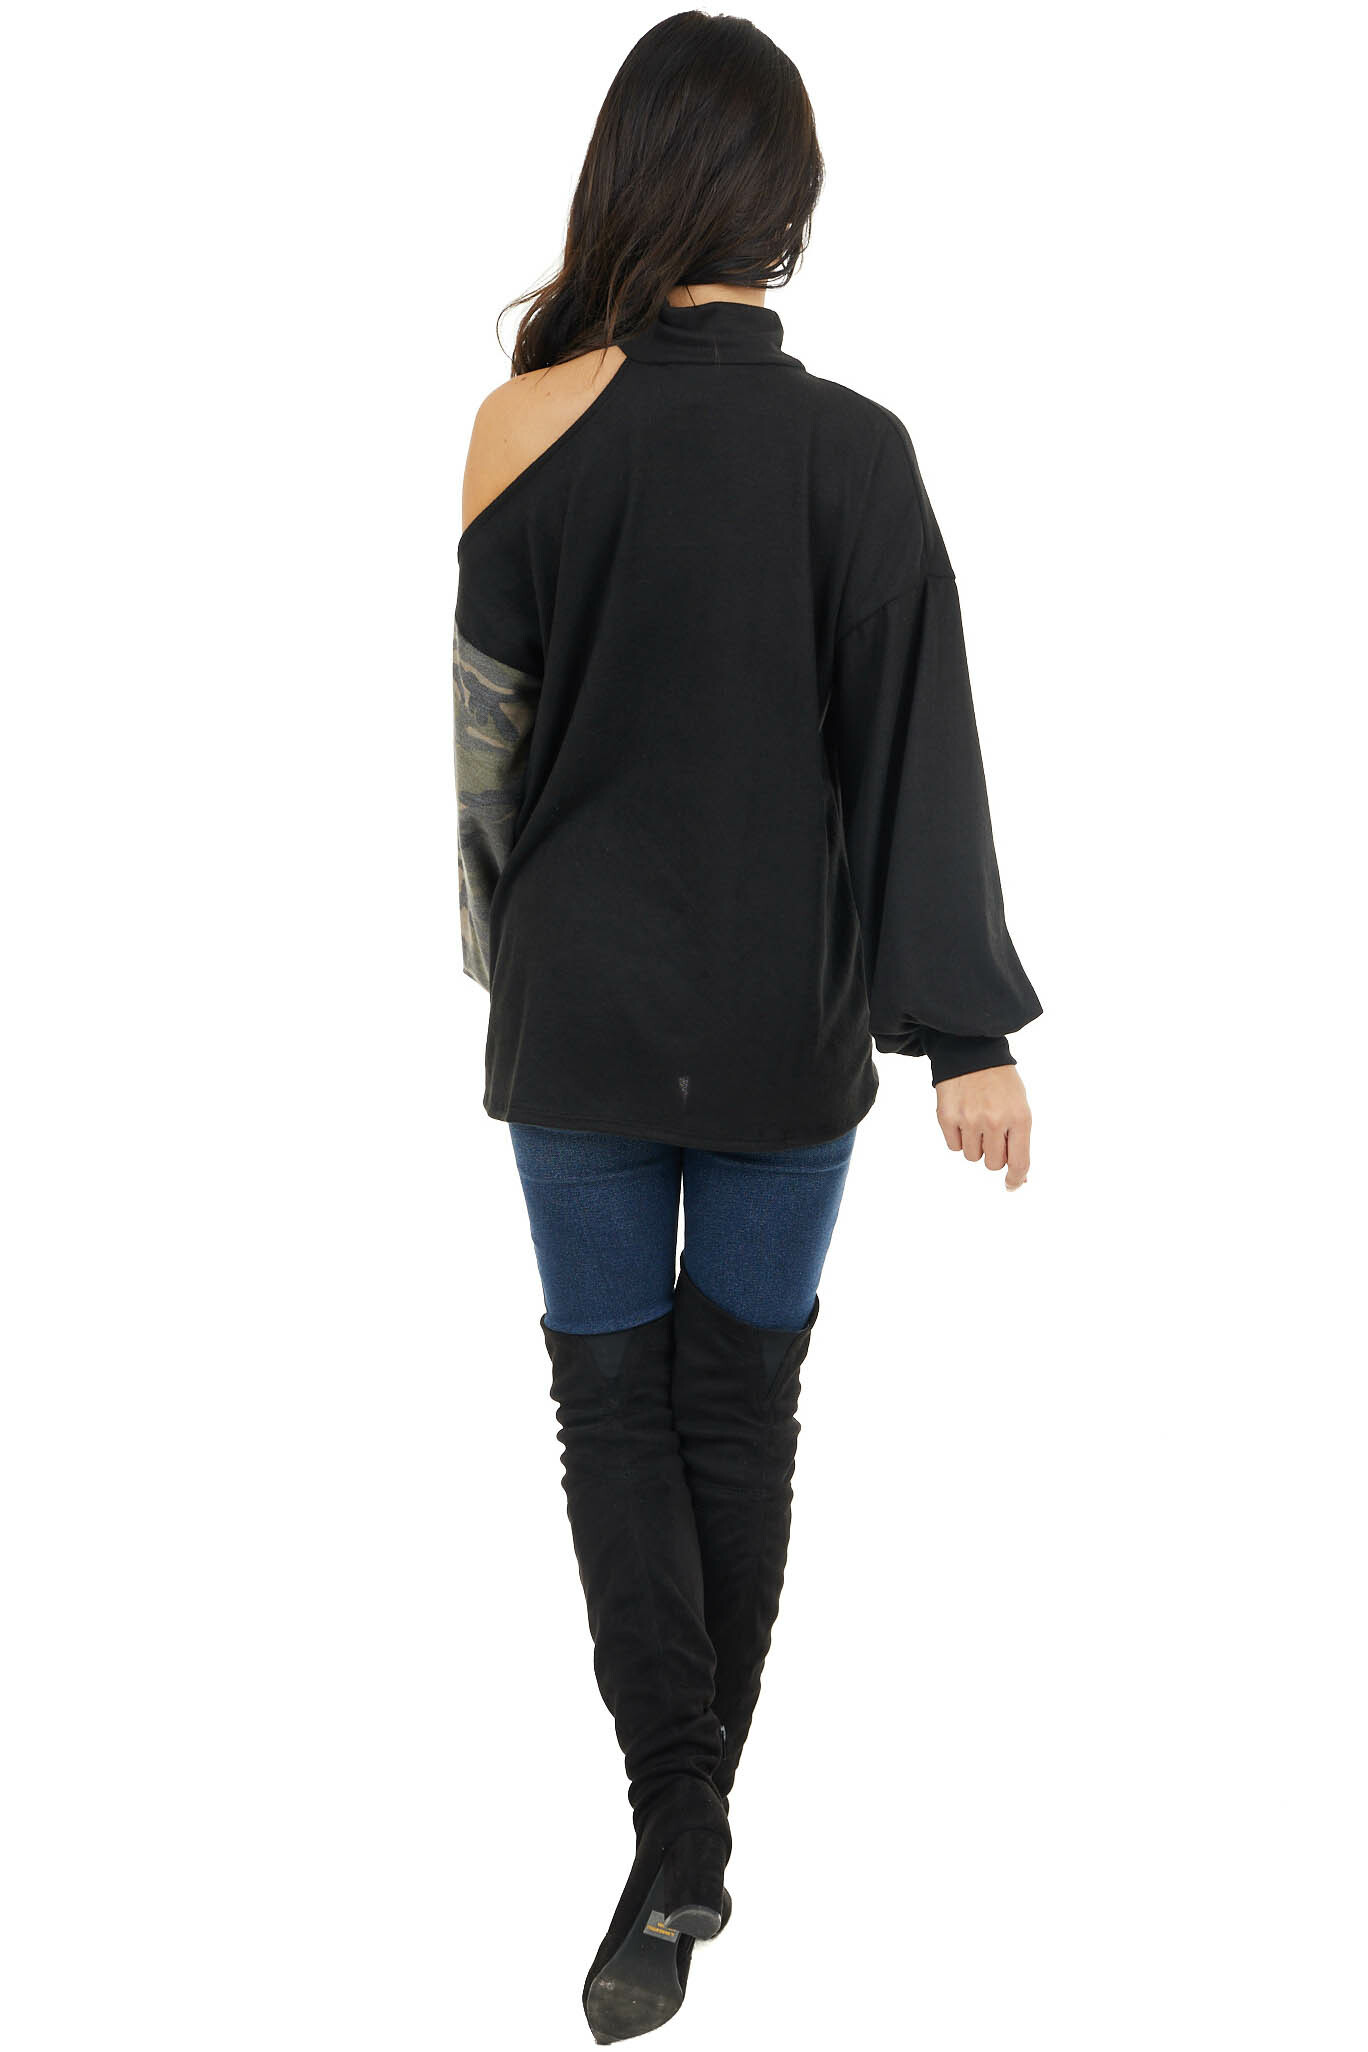 Black Cold Shoulder Long Sleeve Top with Camouflage Contrast